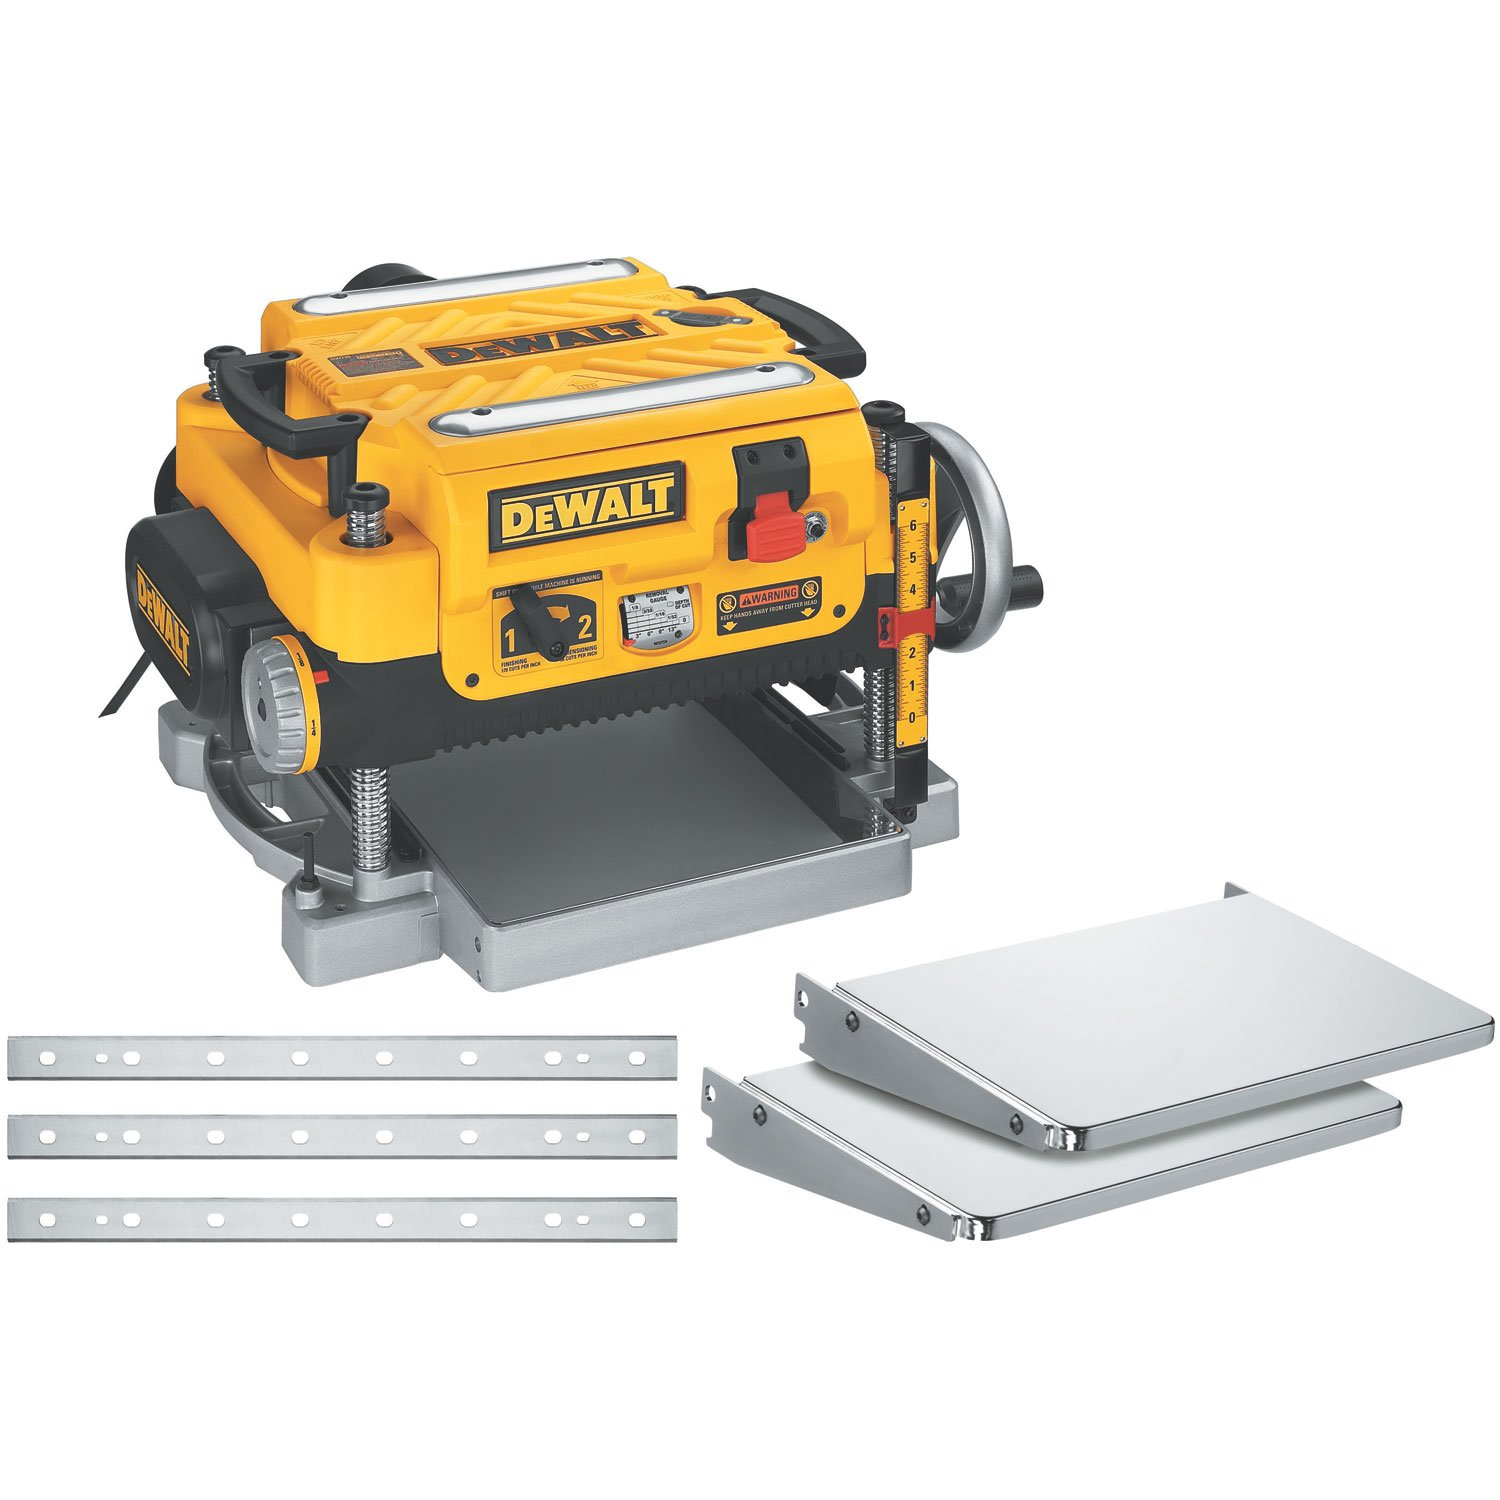 DEWALT DW735X Two Speed Thickness Package